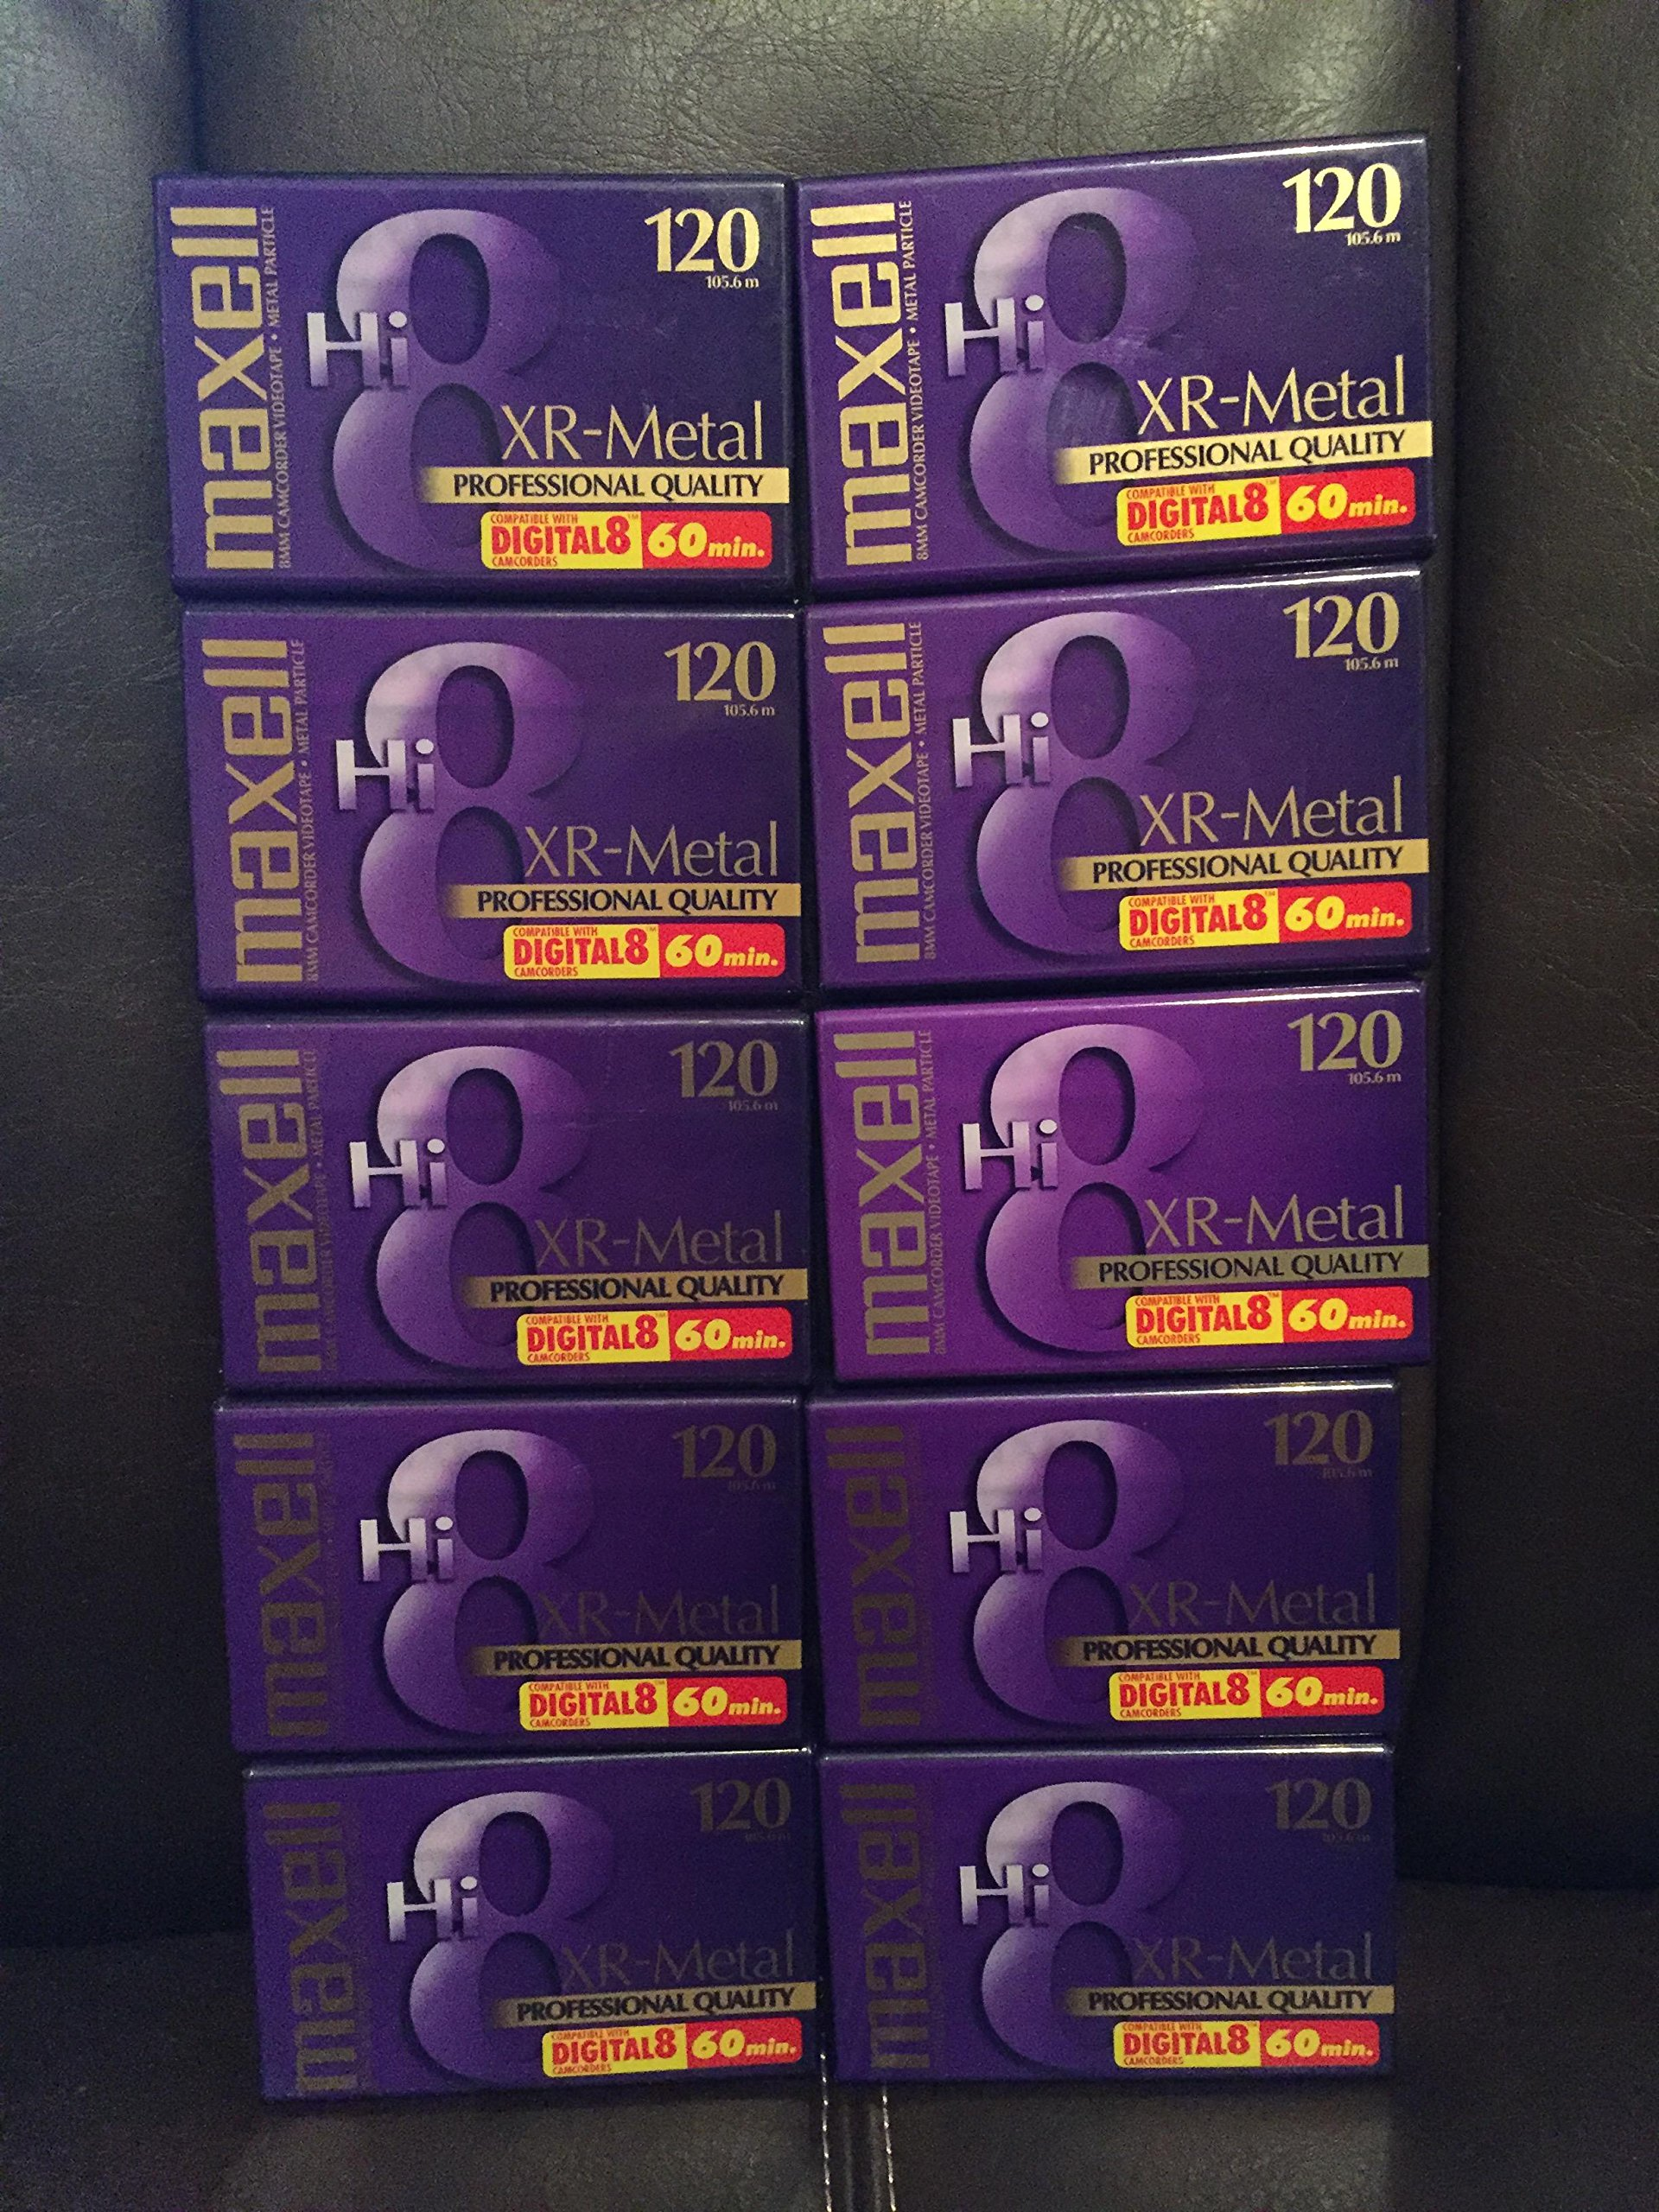 Maxell Hi-8 120 XR-Metal Professional Quality 60 Min. 8MM Camcorder Videotape 10 Pack by Maxell Corporation of America